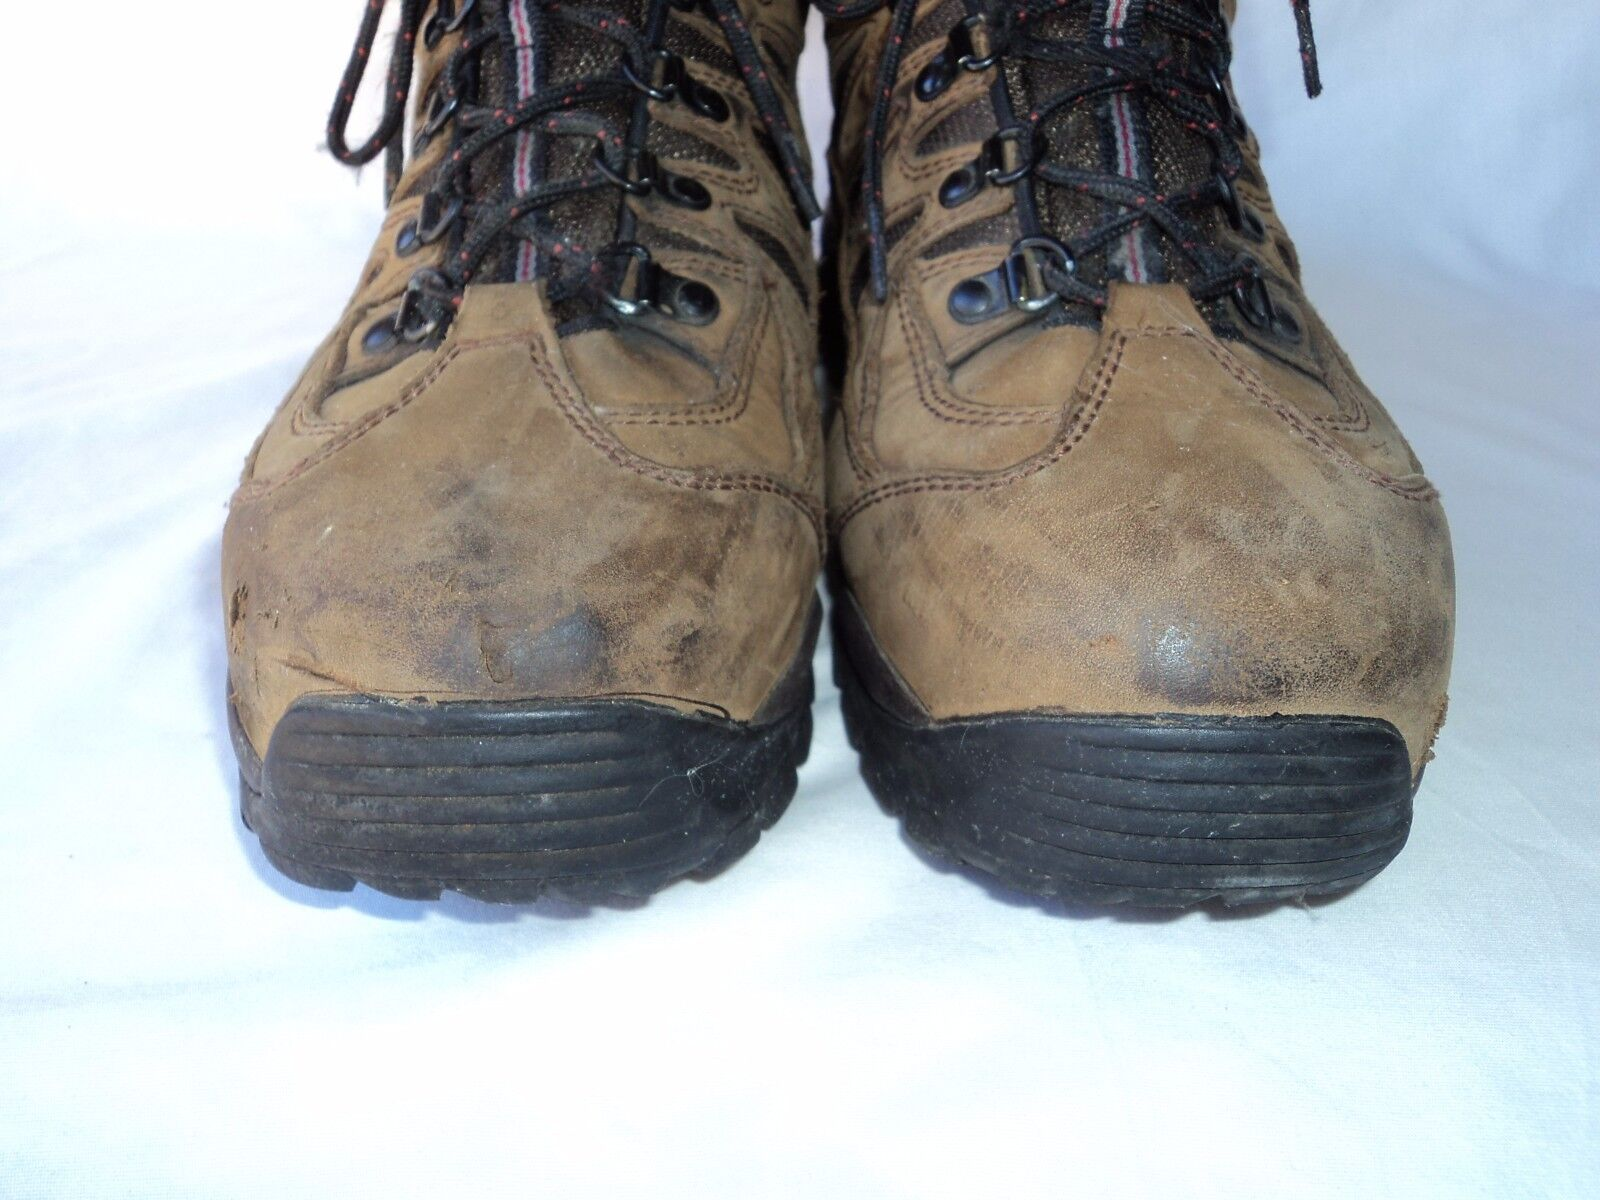 MENS RED WING ASTMF 2413-11 STEELTOE SAFETY WORK BOOTS SIZE 11.5 E Brown